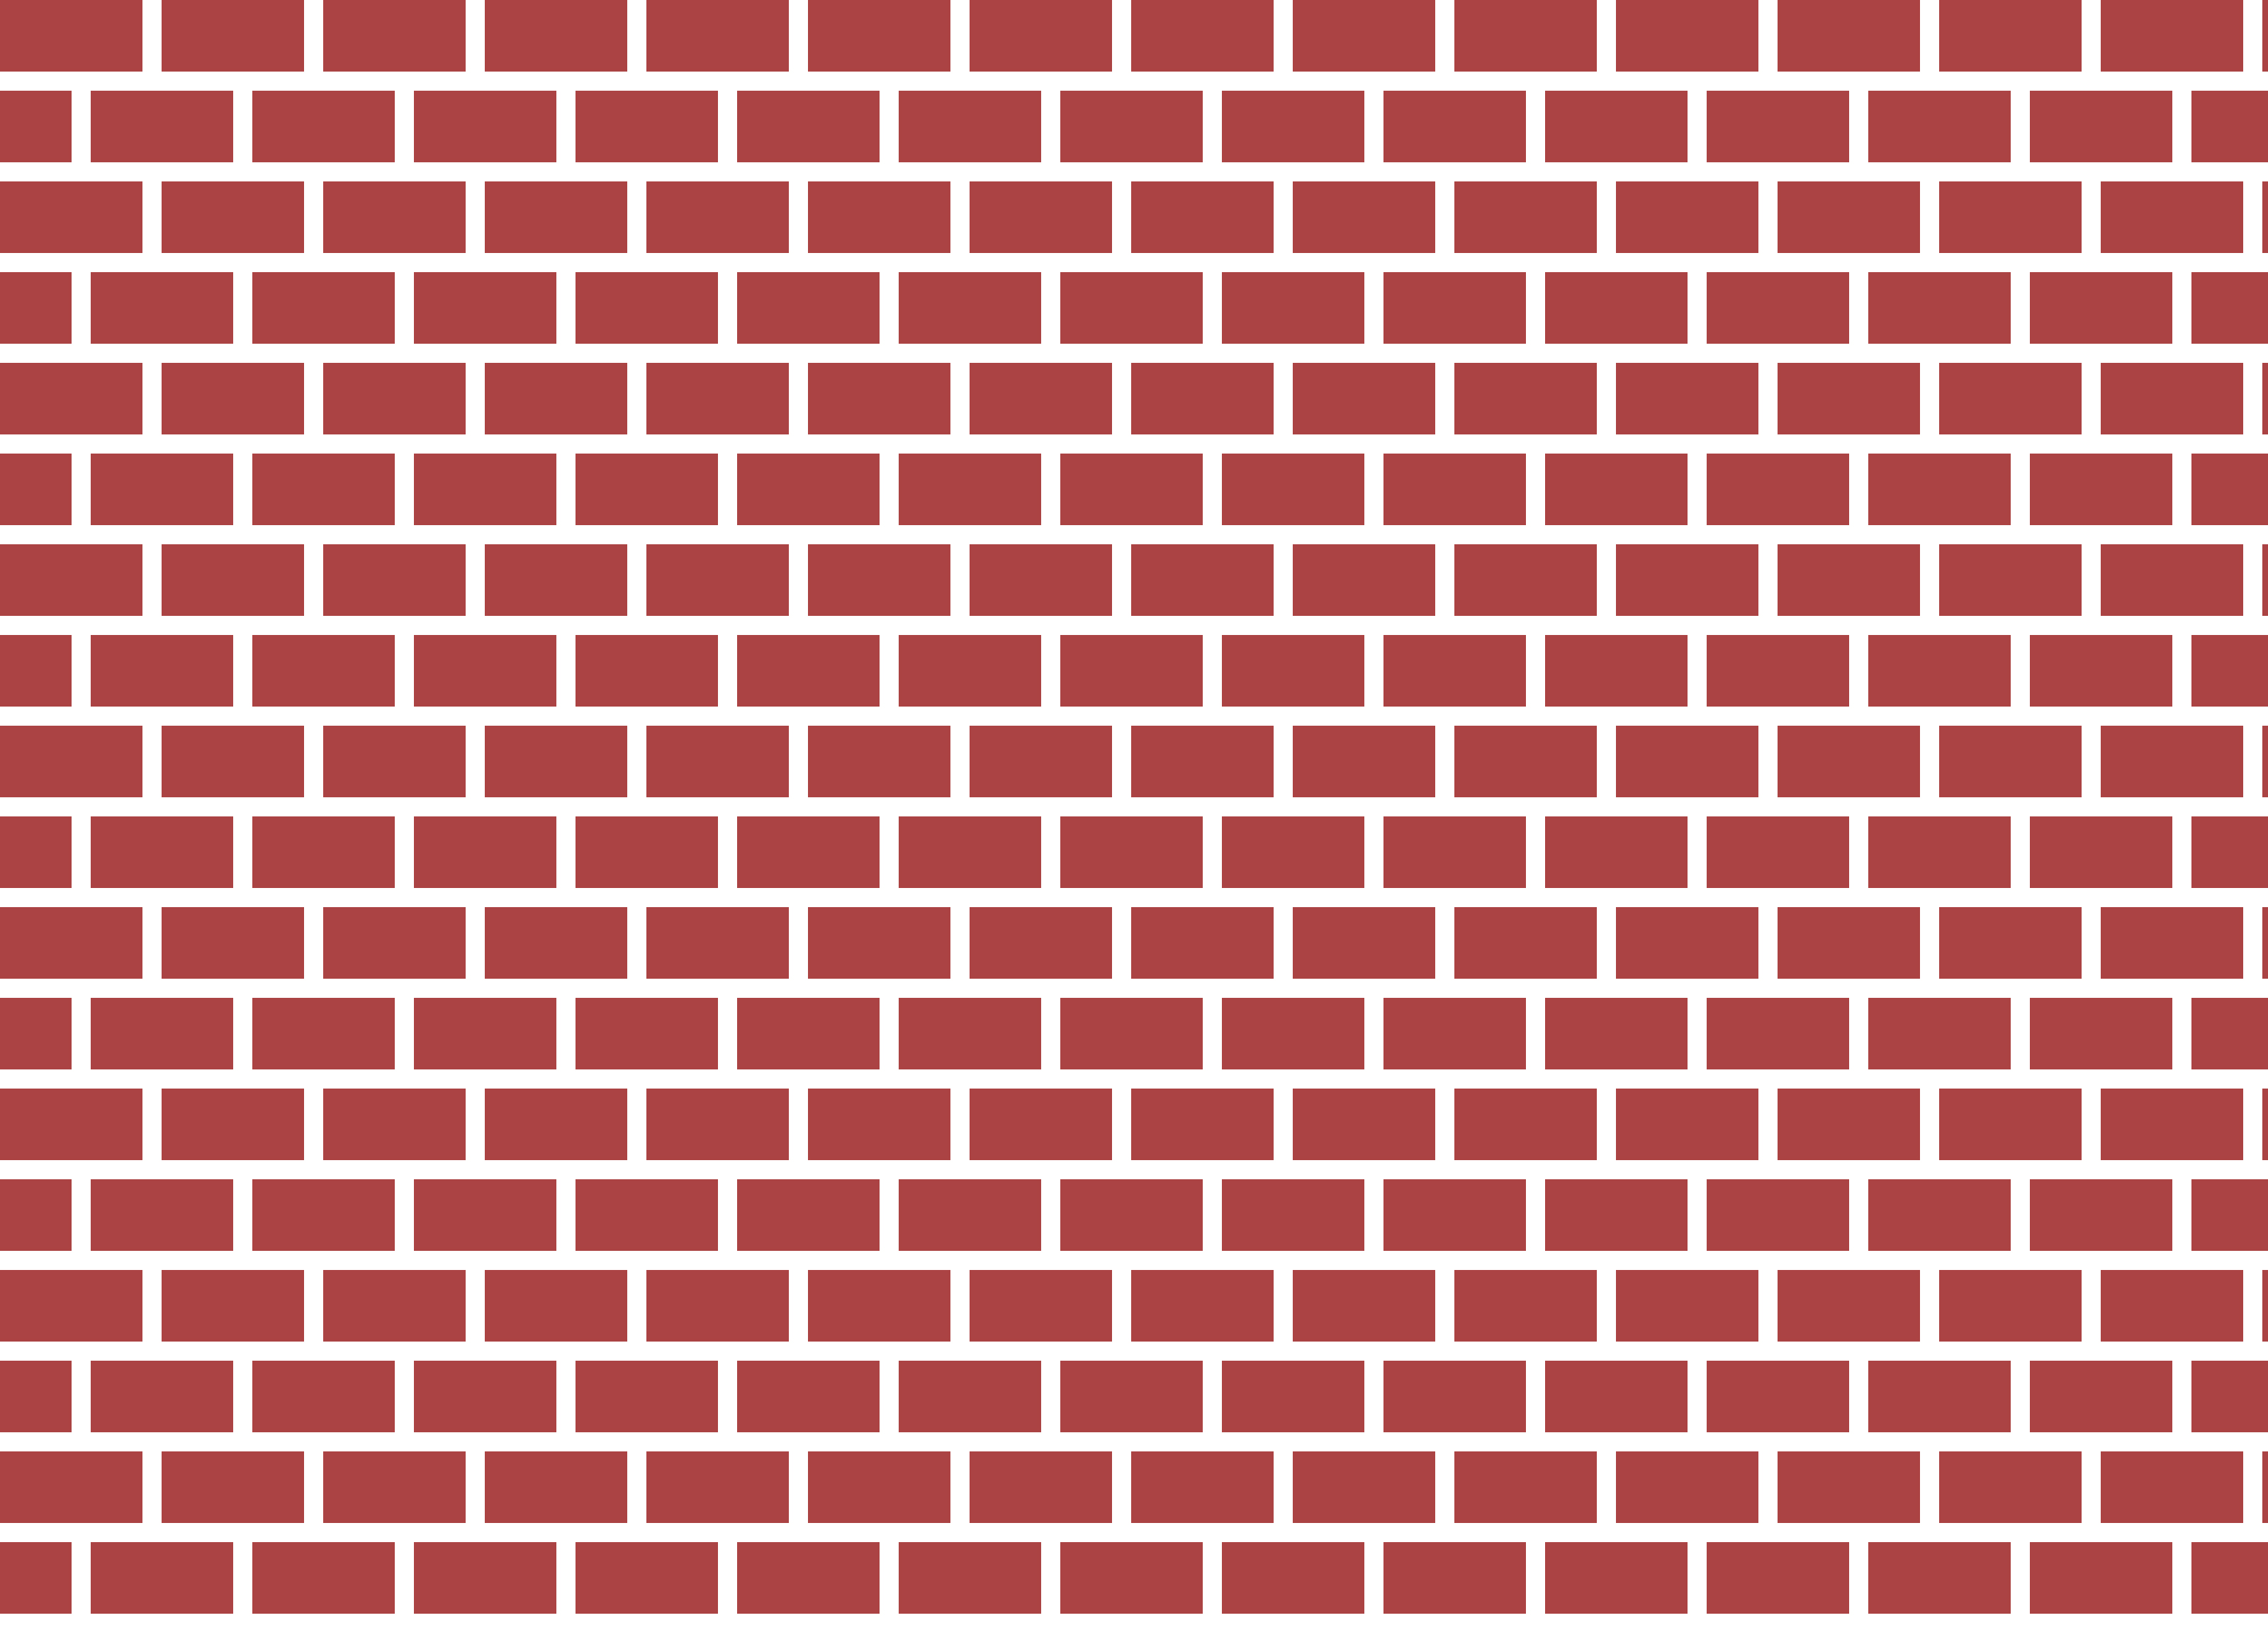 Free clipart ton of bricks freeuse download Bricks clipart 20 free Cliparts   Download images on Clipground 2019 freeuse download